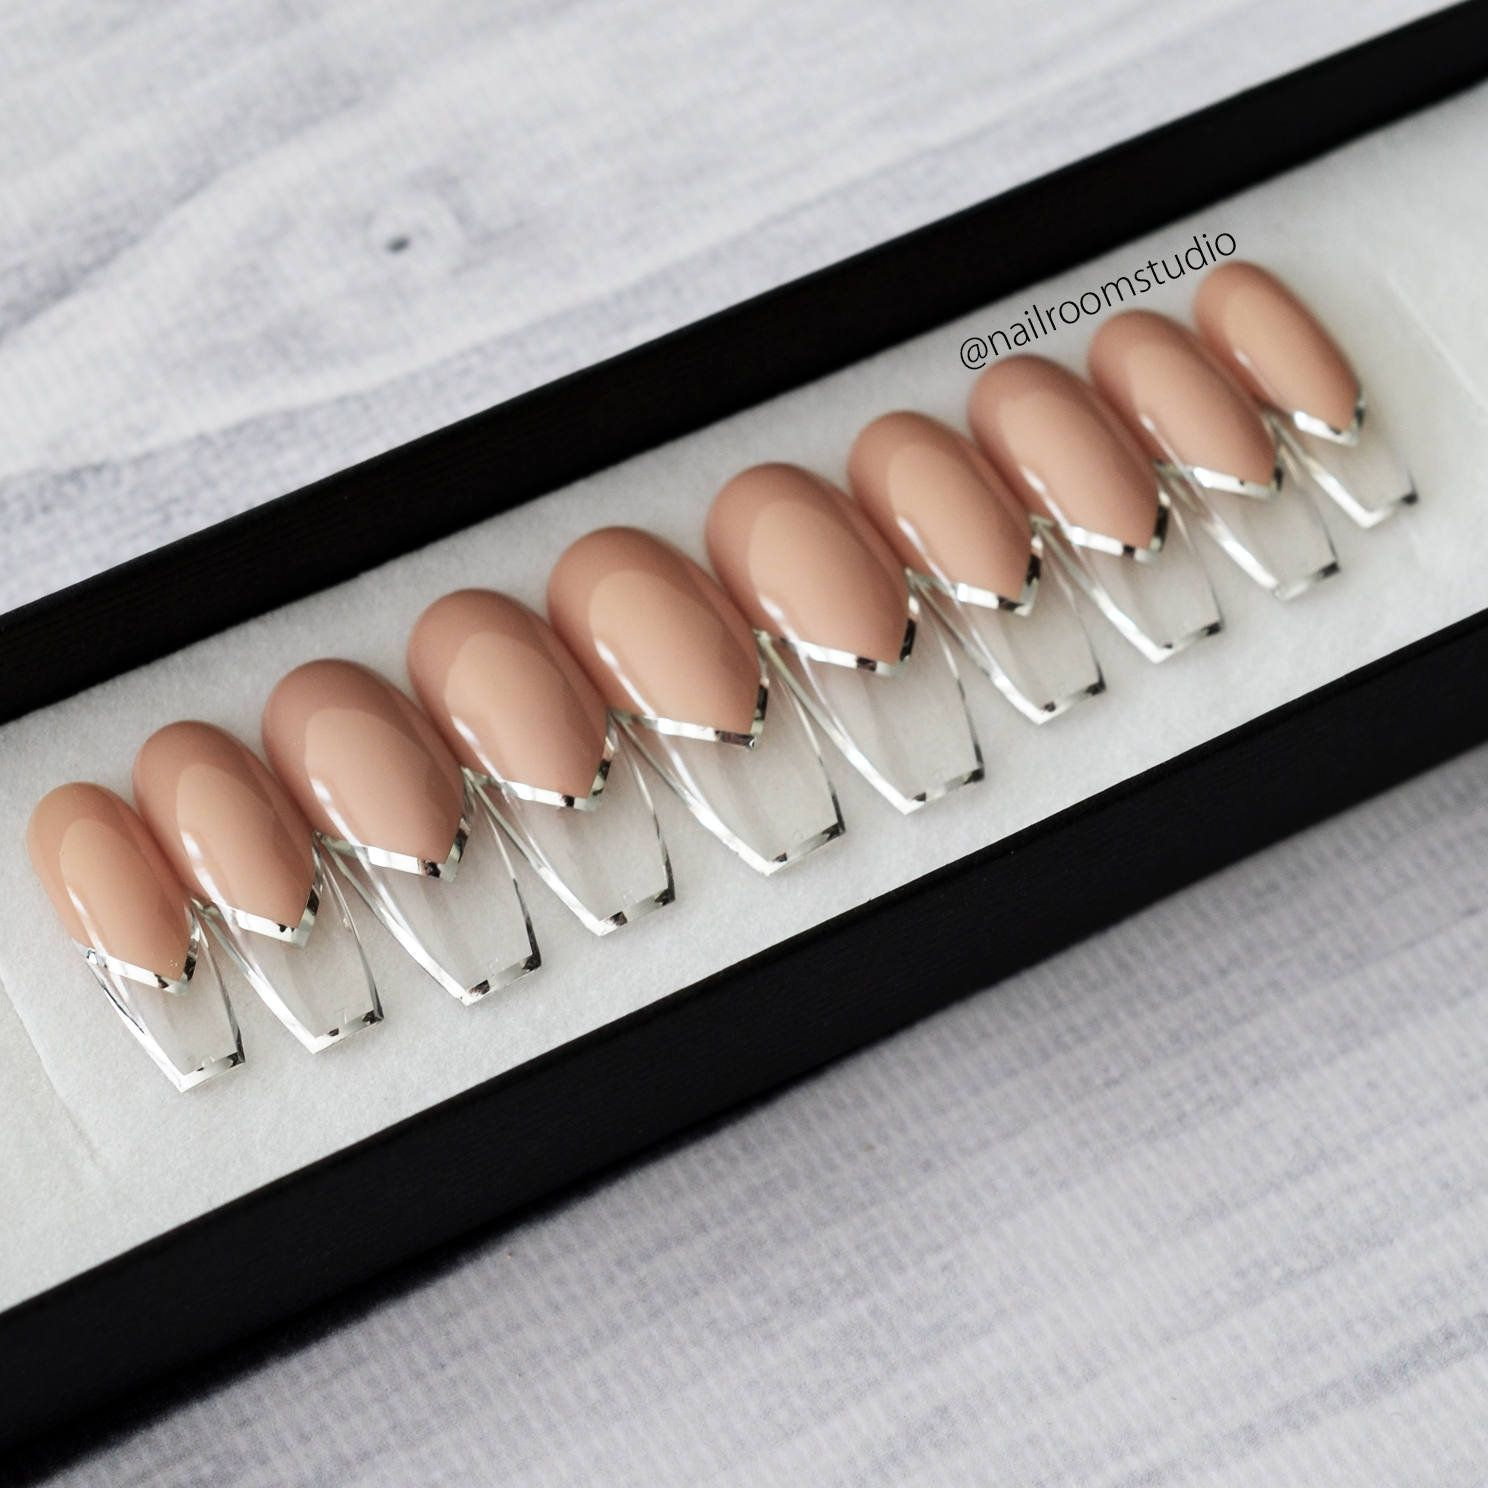 NUDE FRAME FRENCH exclusive 10 press on nails  silver gold   Etsy